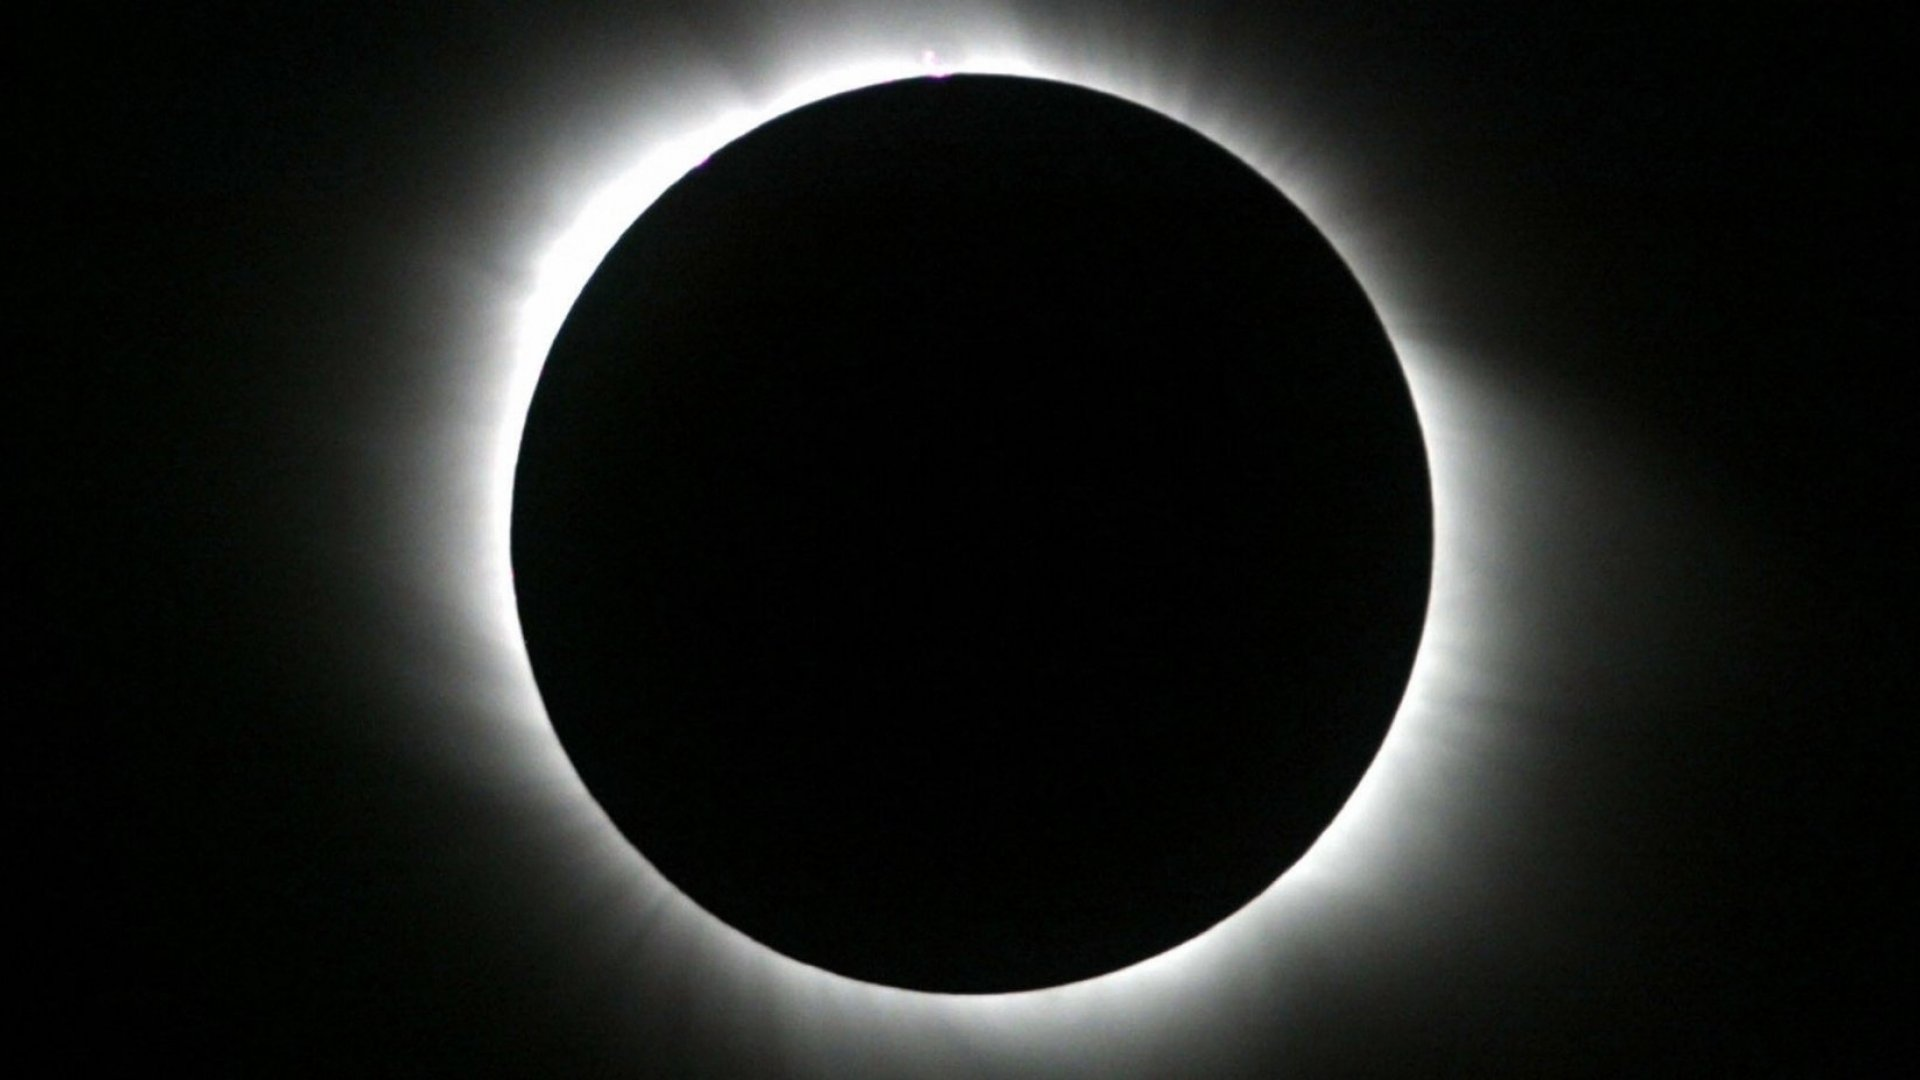 A total solar eclipse occurs when the moon comes between the Earth and the sun, completely obscuring the solar disk for a few minutes.